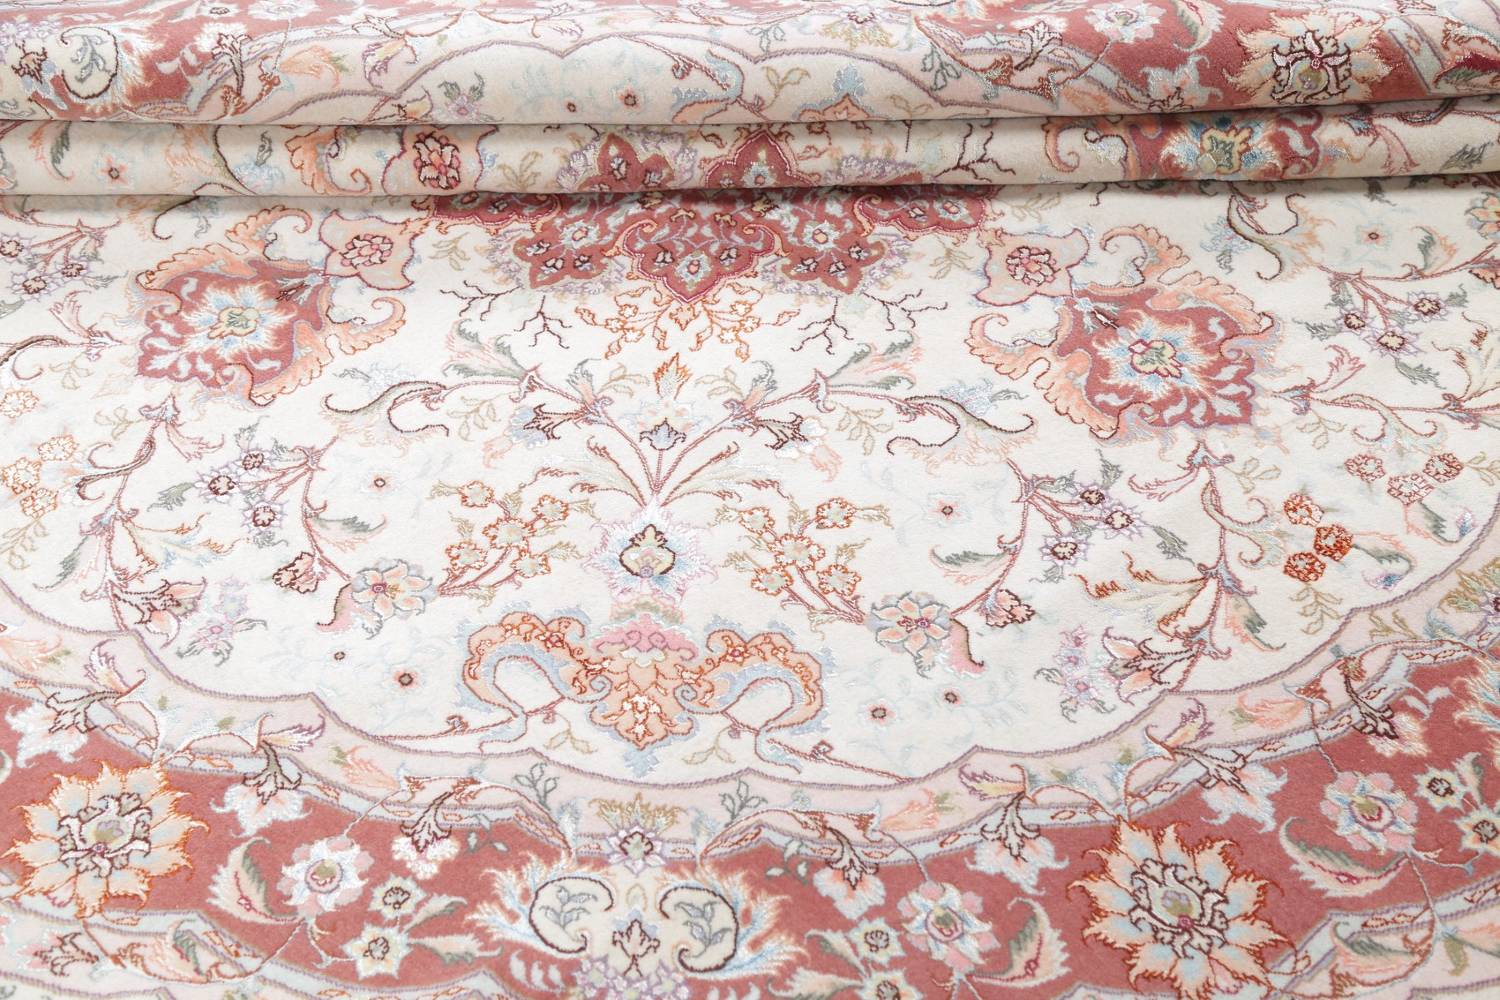 Vegetable Dye Floral Ivory Tabriz Persian Hand-Knotted Round Rug 7x7 image 17